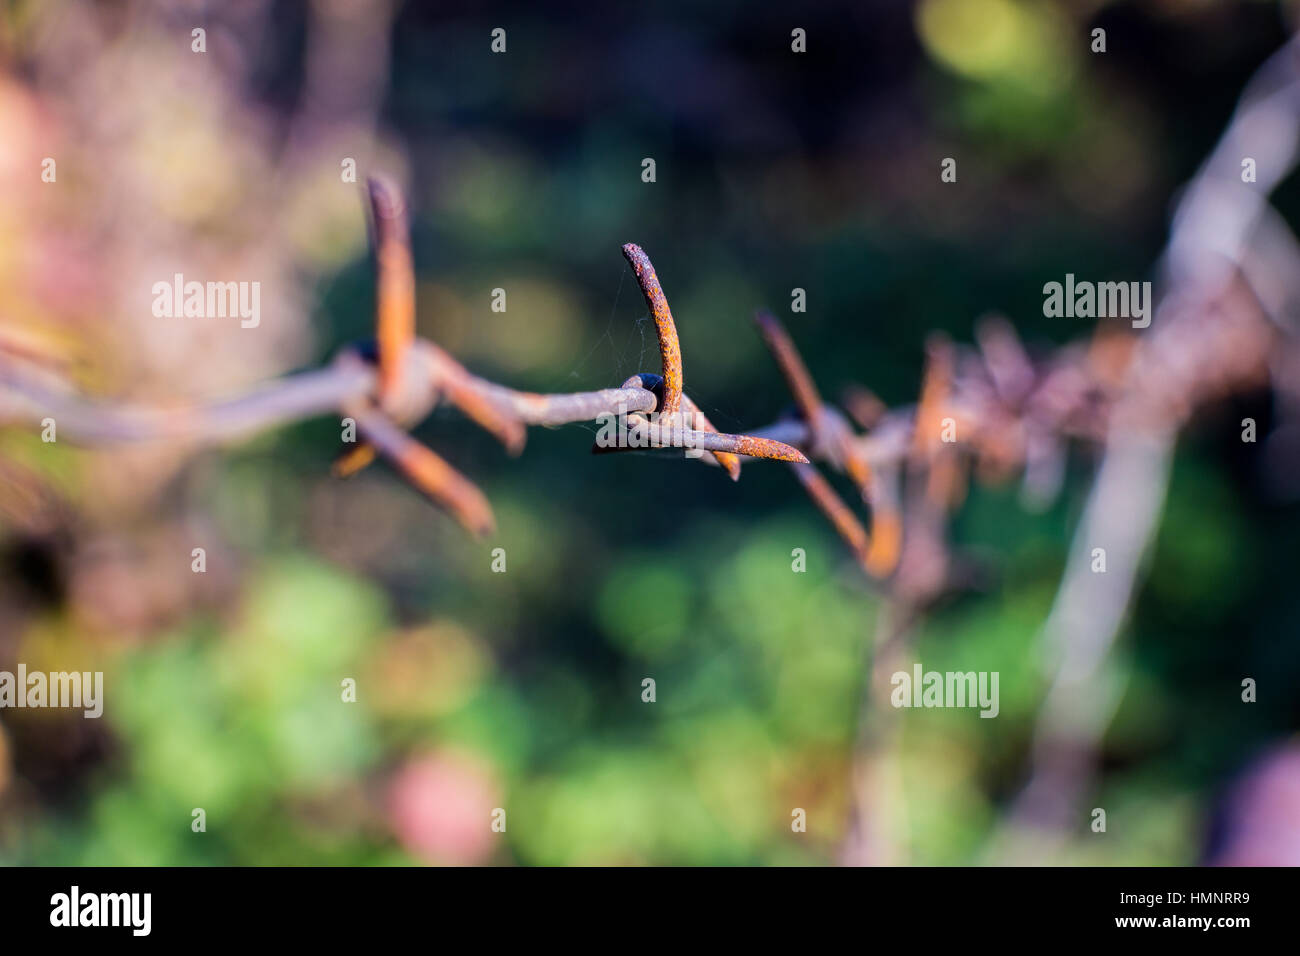 Barbed wire closeup on blurred background 2 - Stock Image